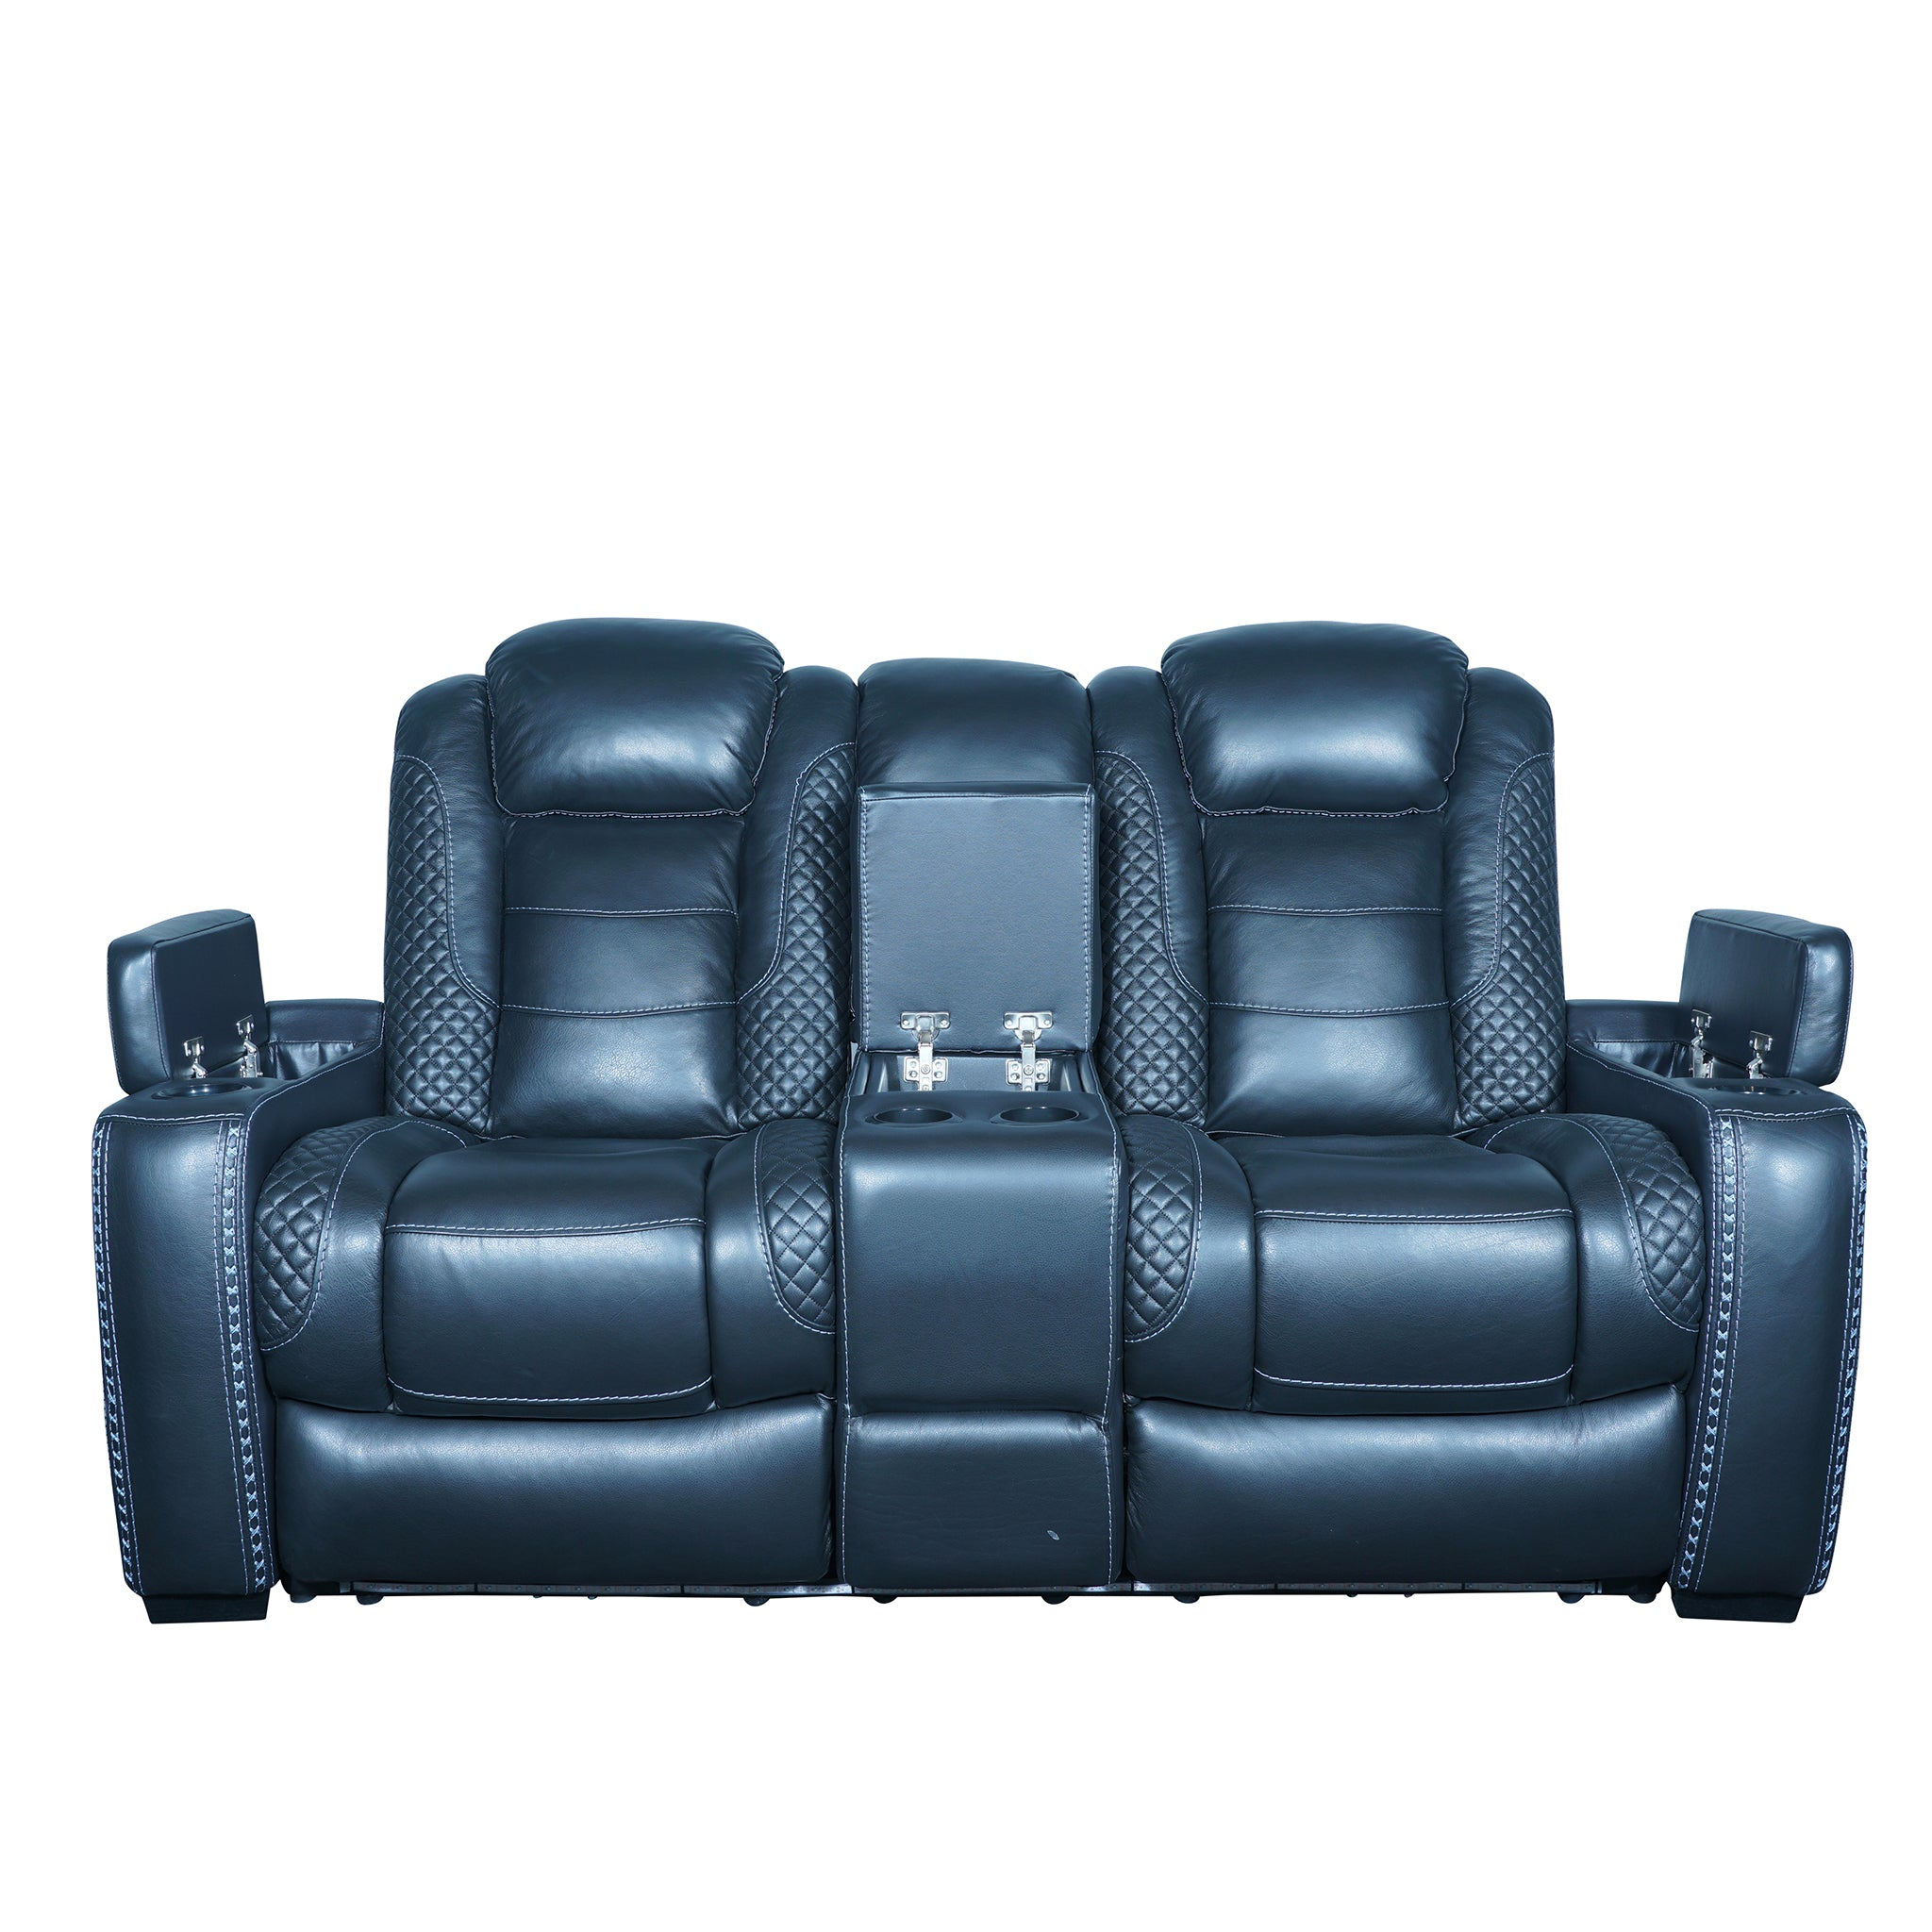 italian top grain leather 2 seater sofas with storage and cup holder